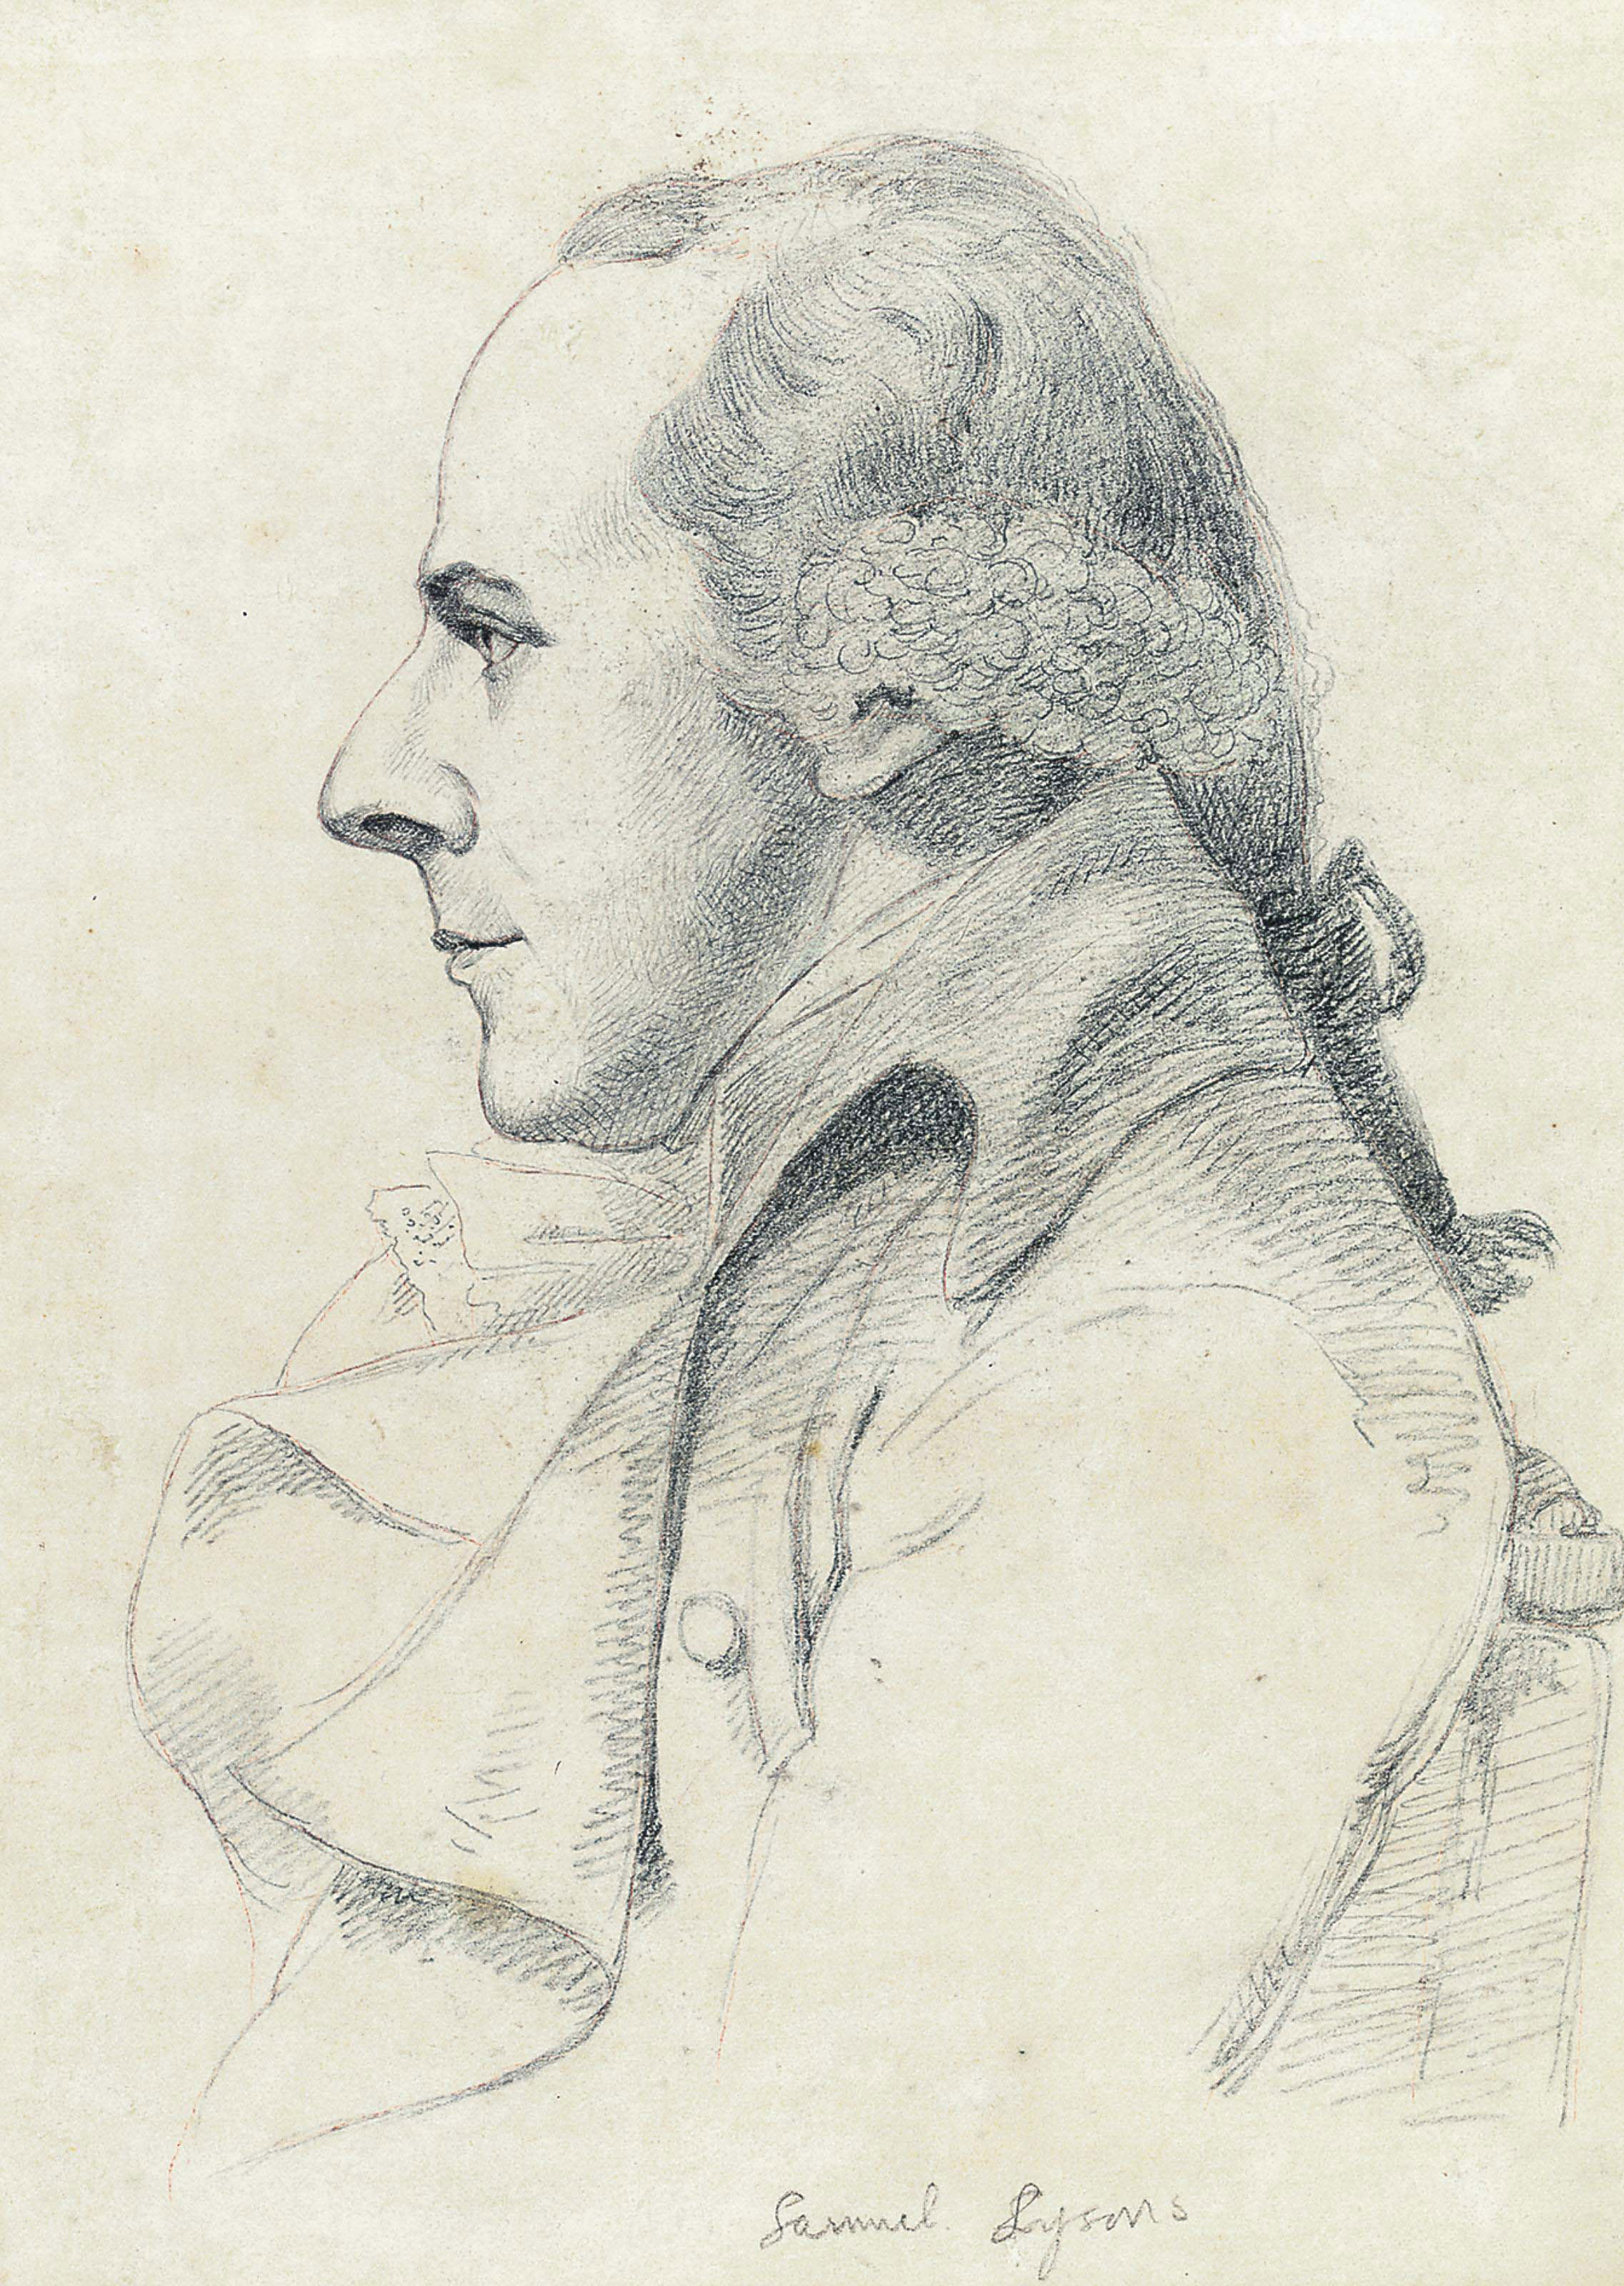 Portrait of Samuel Lysons, half-length, in profile to the left